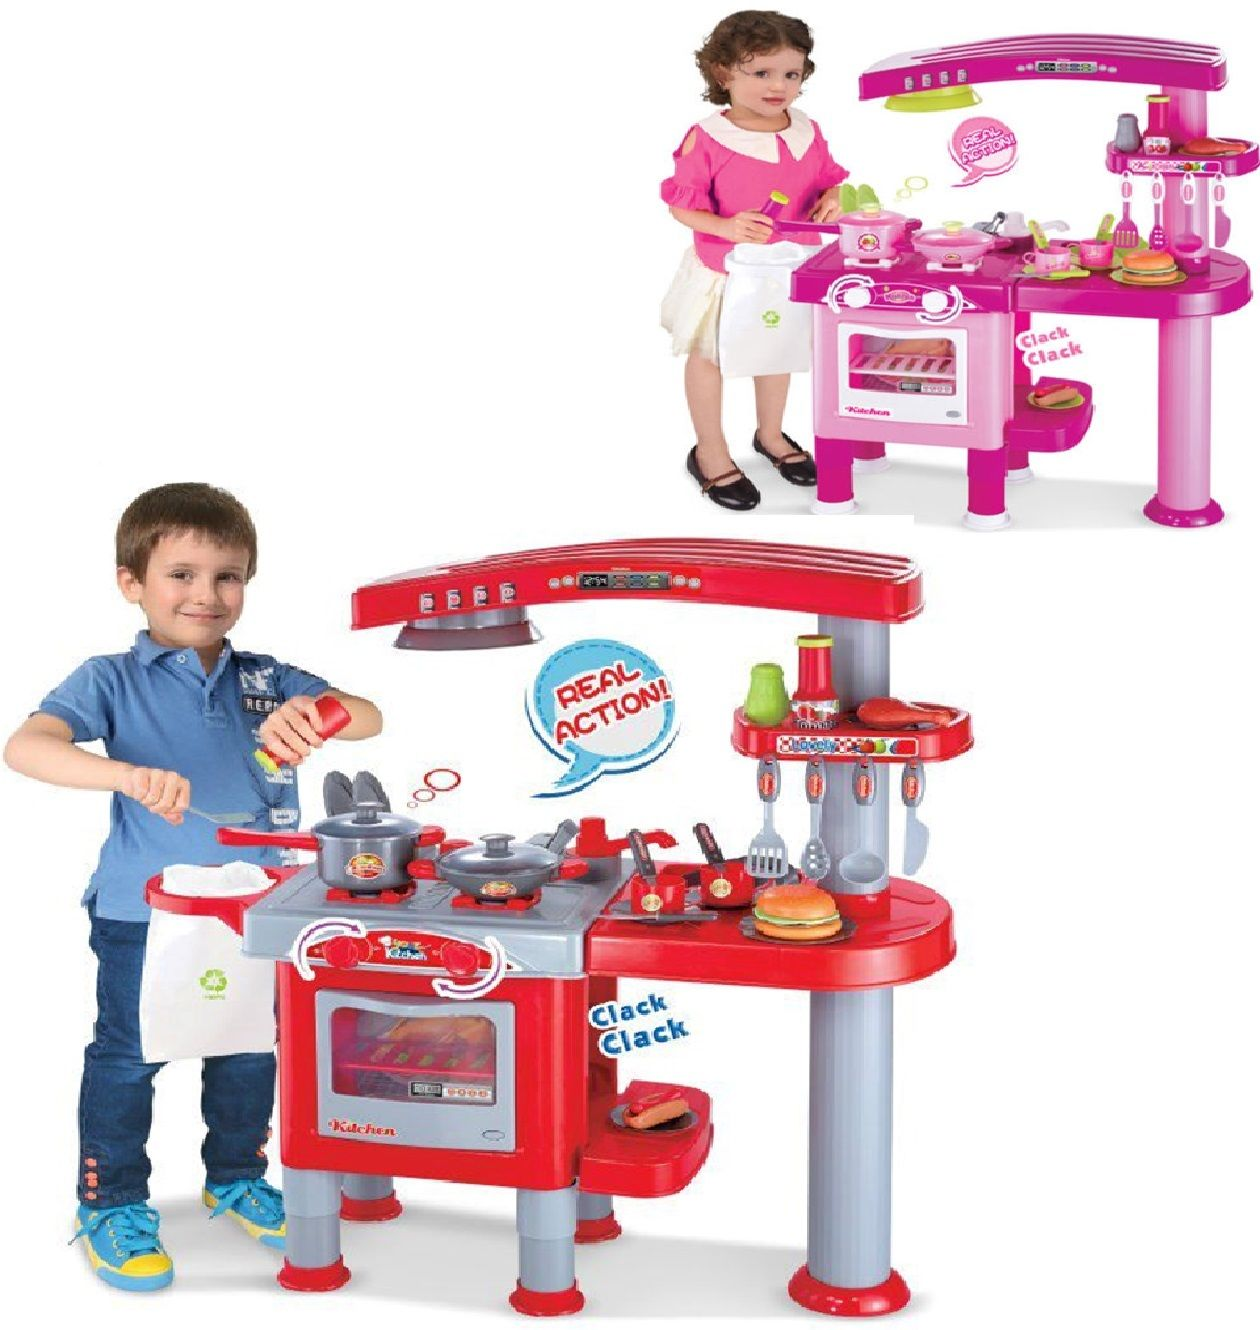 Large Kitchen Small Kids Childs Playset Role Play Food Cooker Pans Toy Xmas